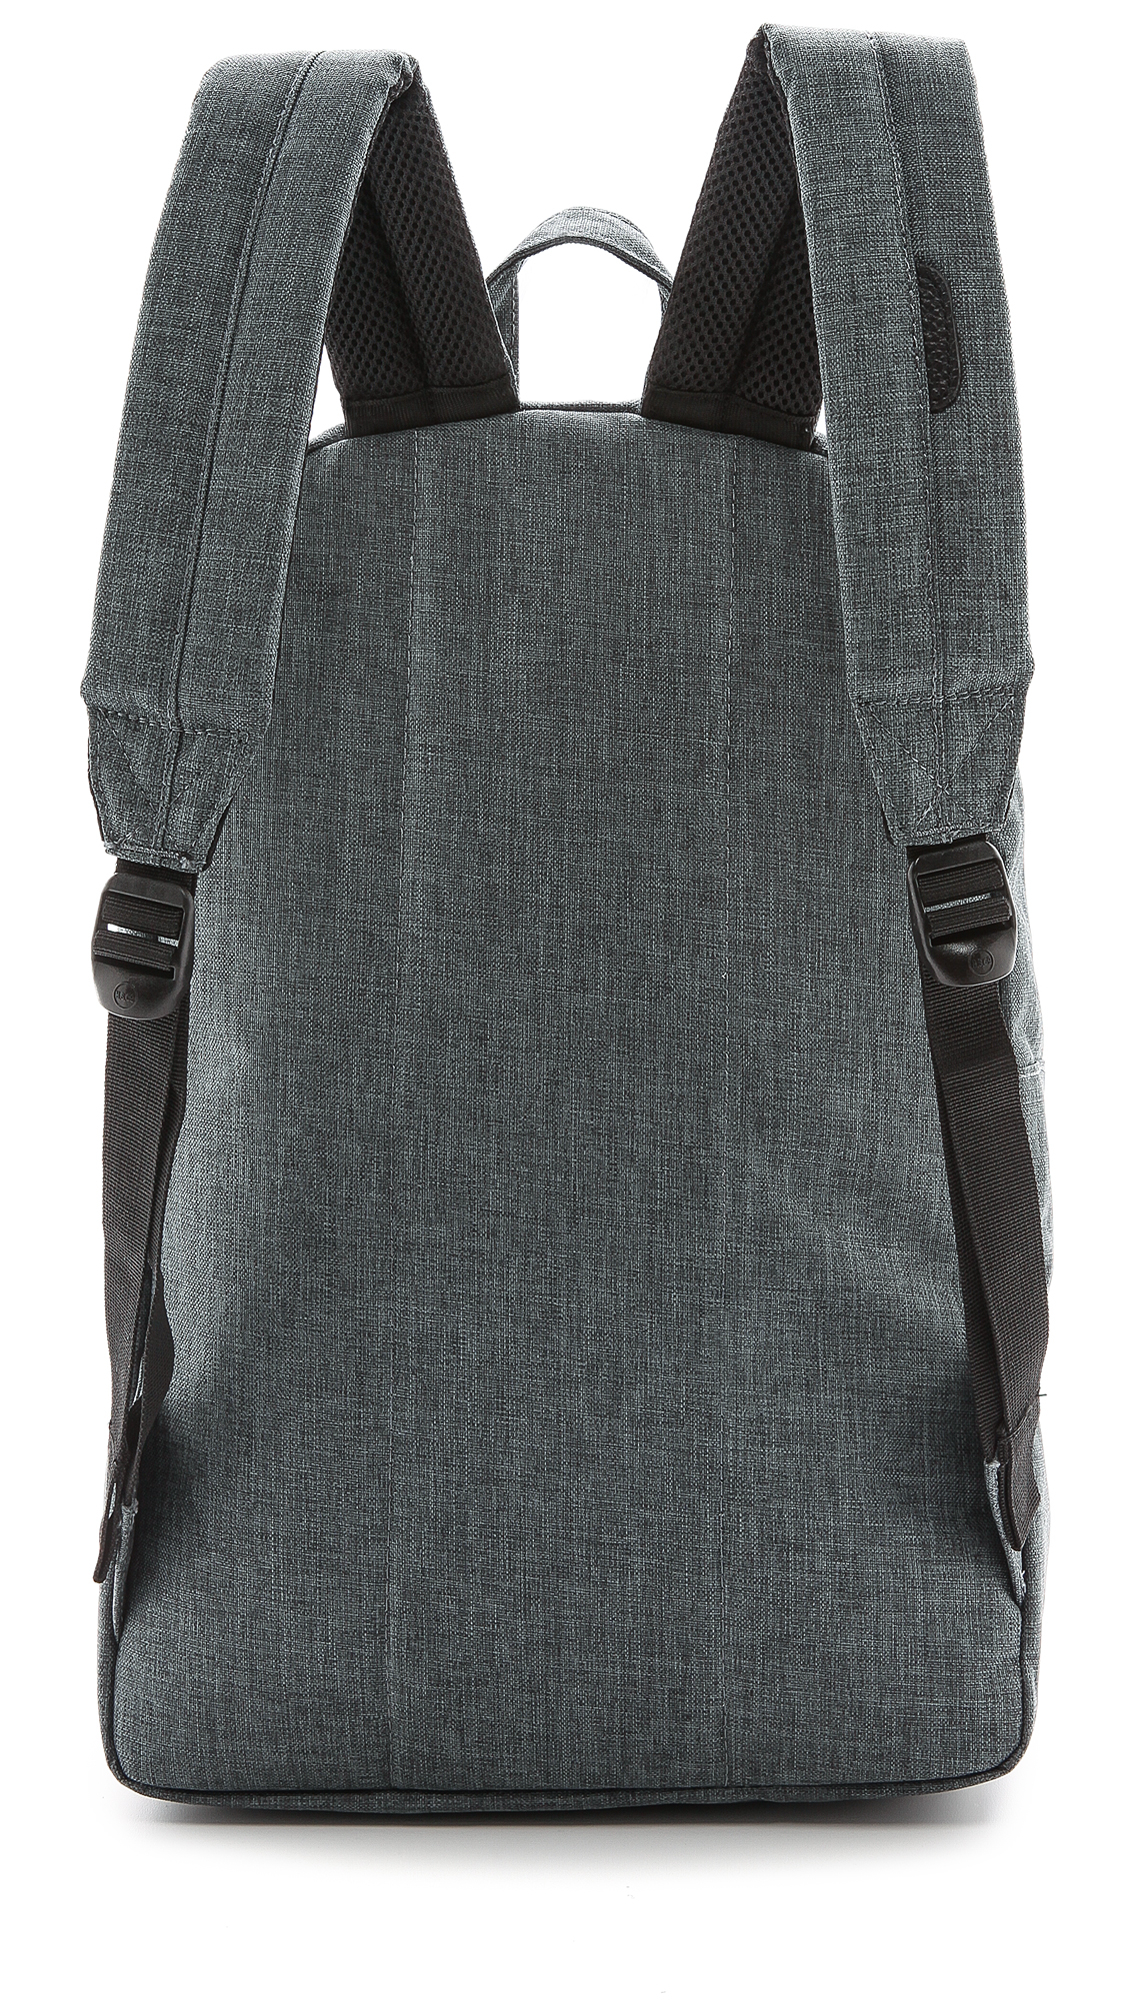 1cbe85cb0f Herschel Supply Co. Heritage Ranch Crosshatch Backpack in Gray for ...